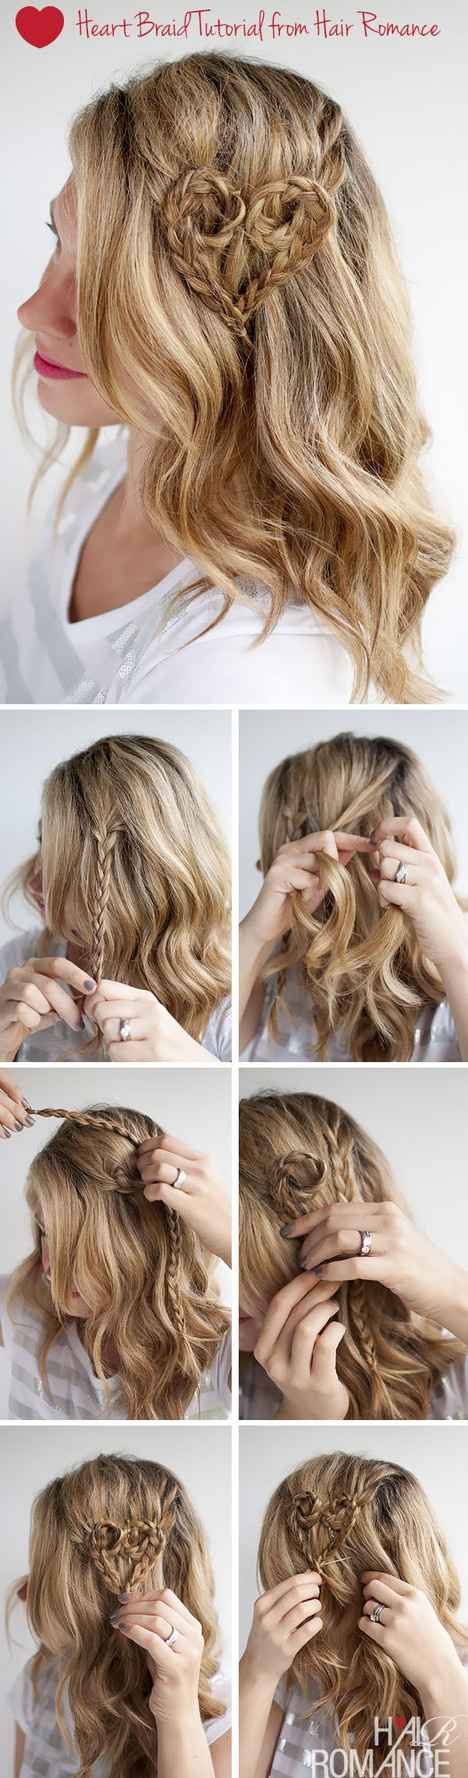 Fun heart braid